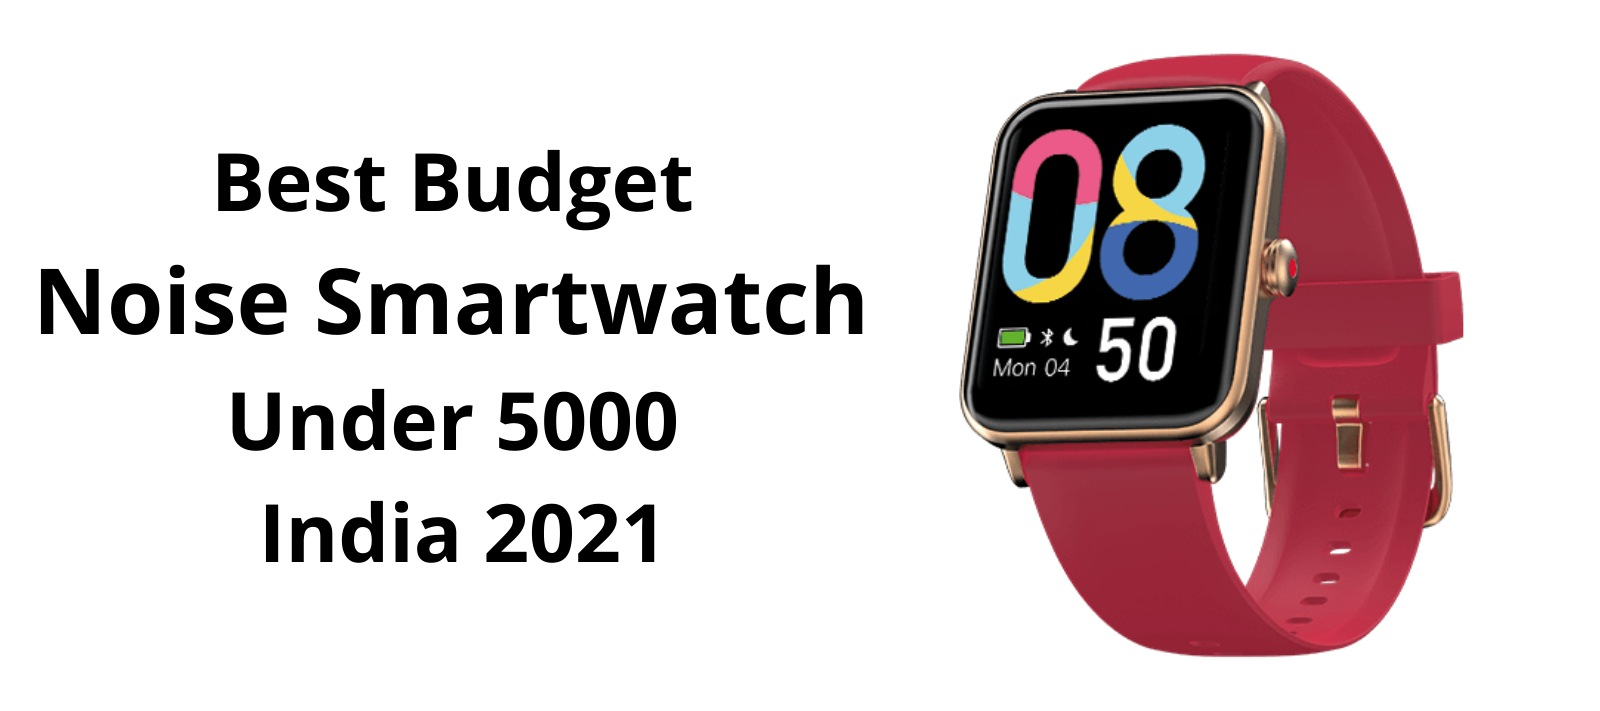 You are currently viewing Best Budget Noise Smartwatch under 5000 India 2021-Dealsuper